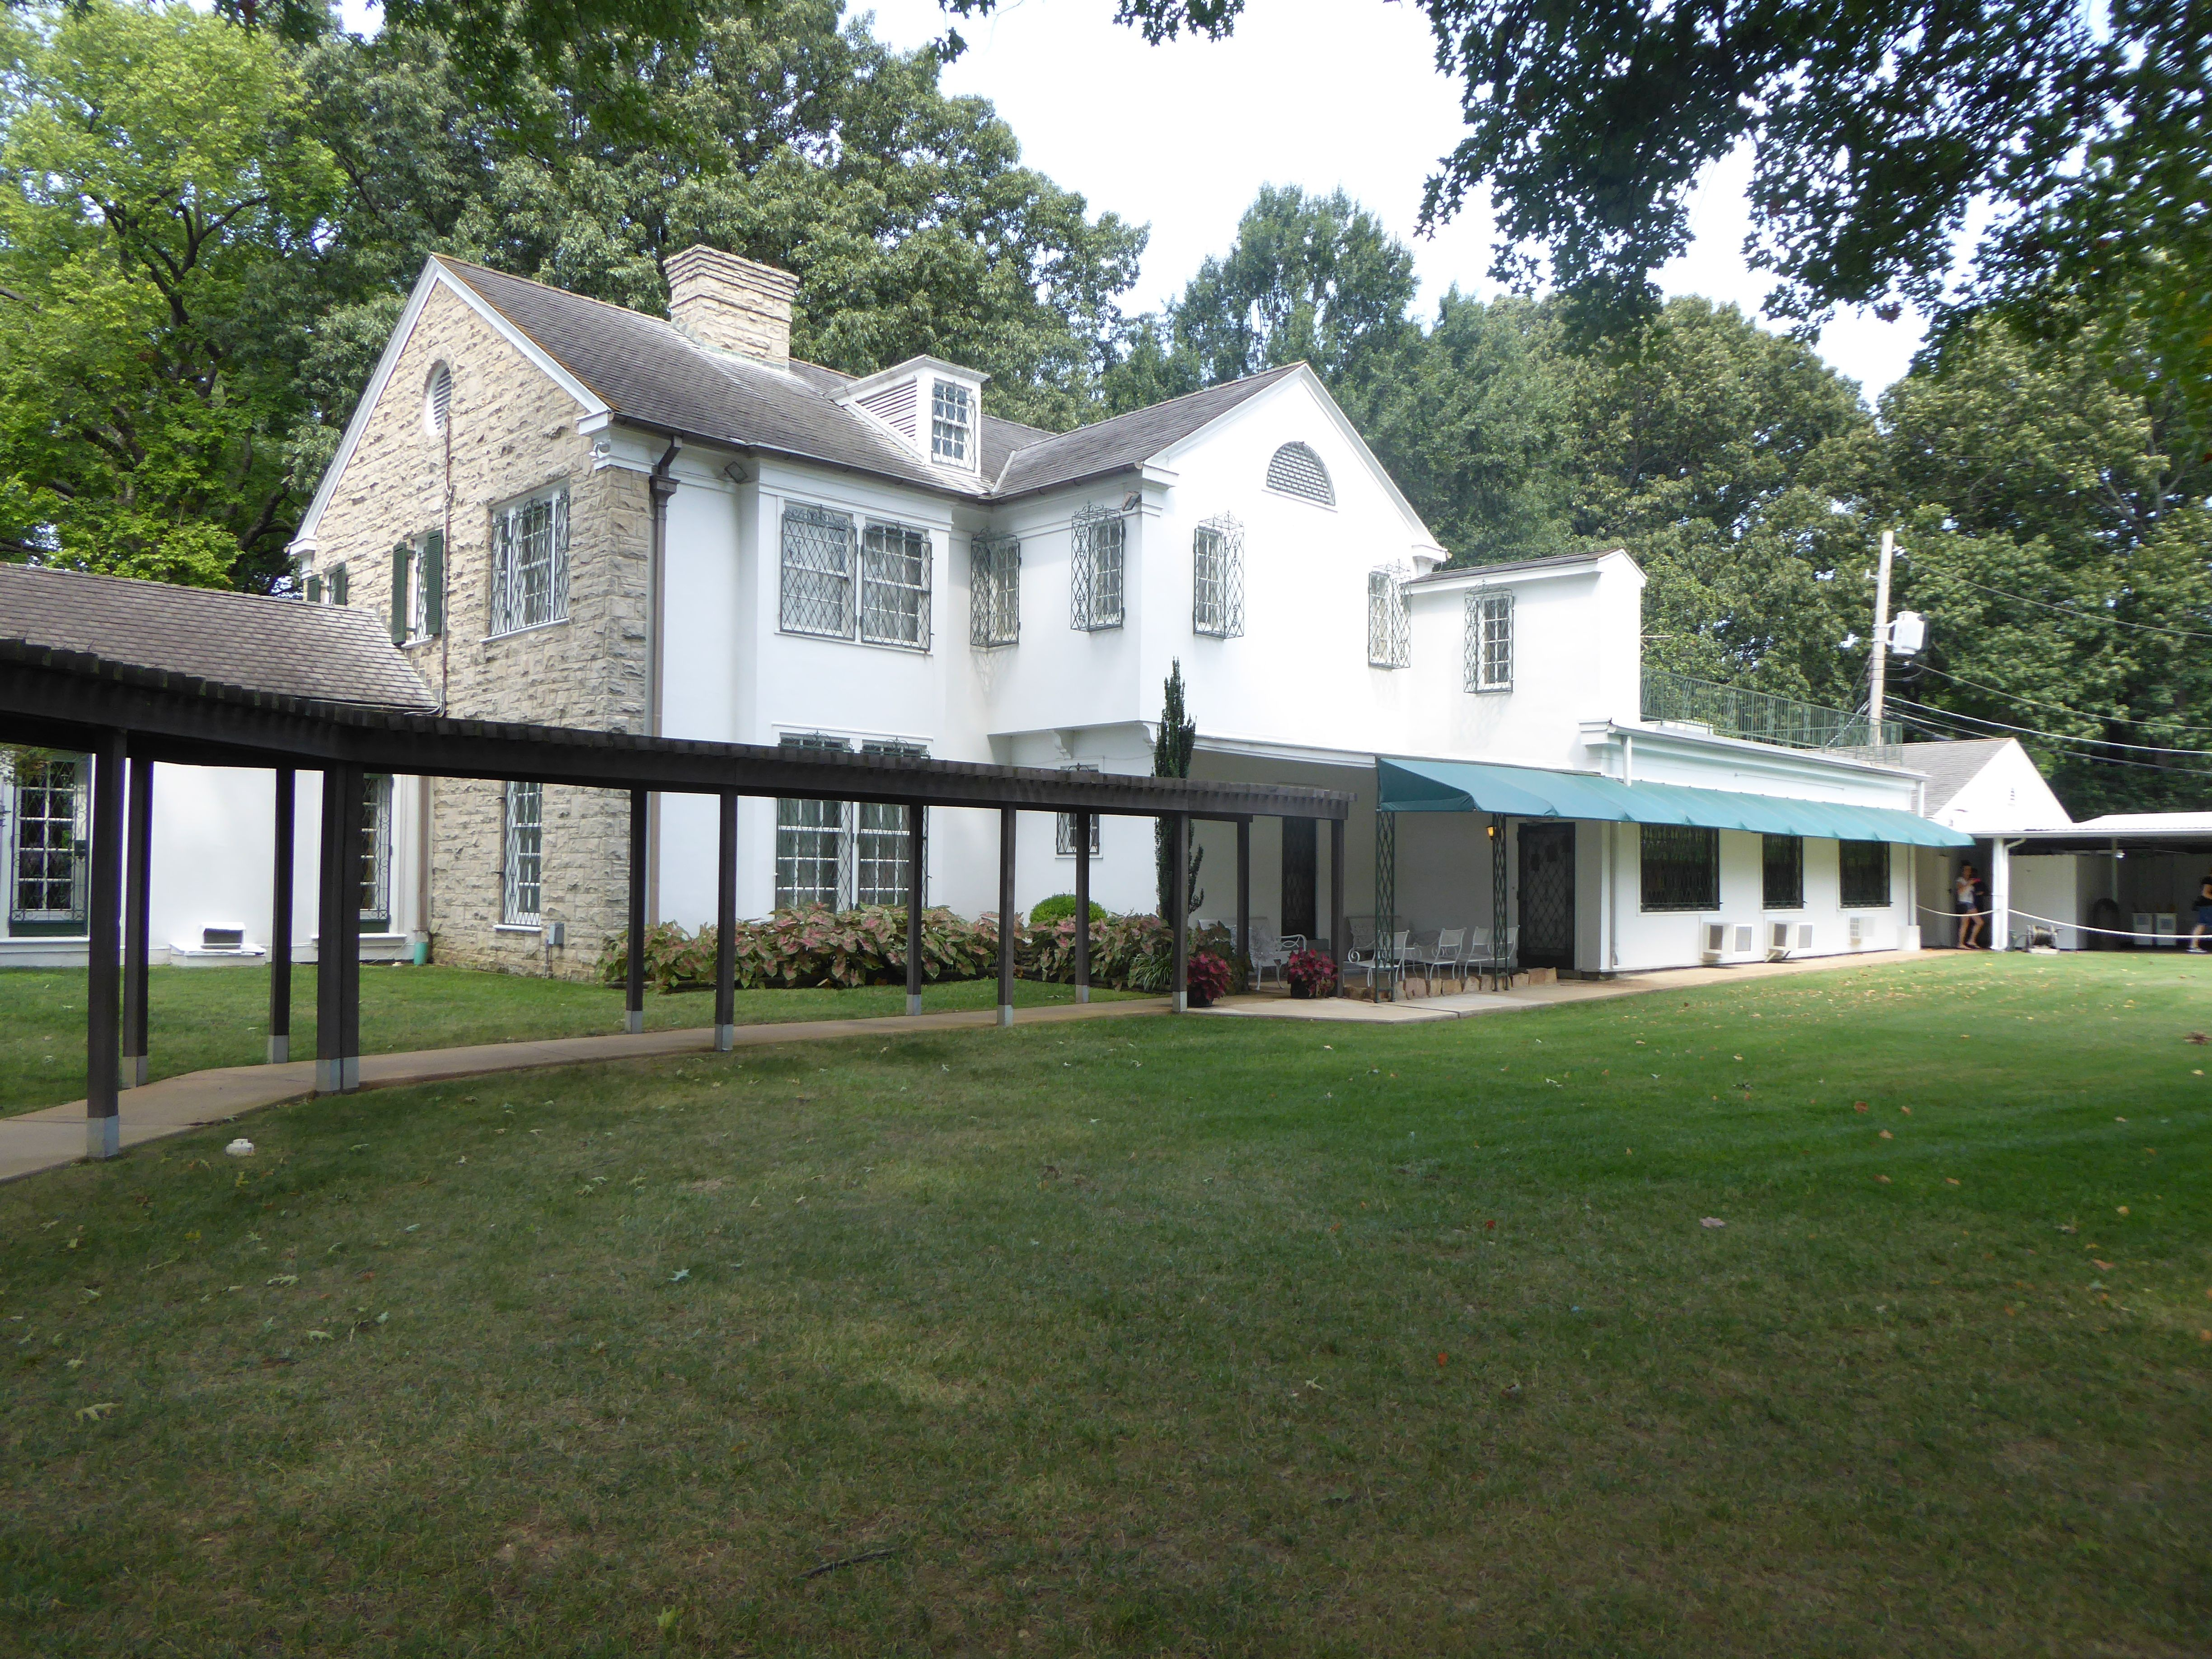 back of graceland elvis graceland in 2019 graceland elvis elvis rh pinterest com